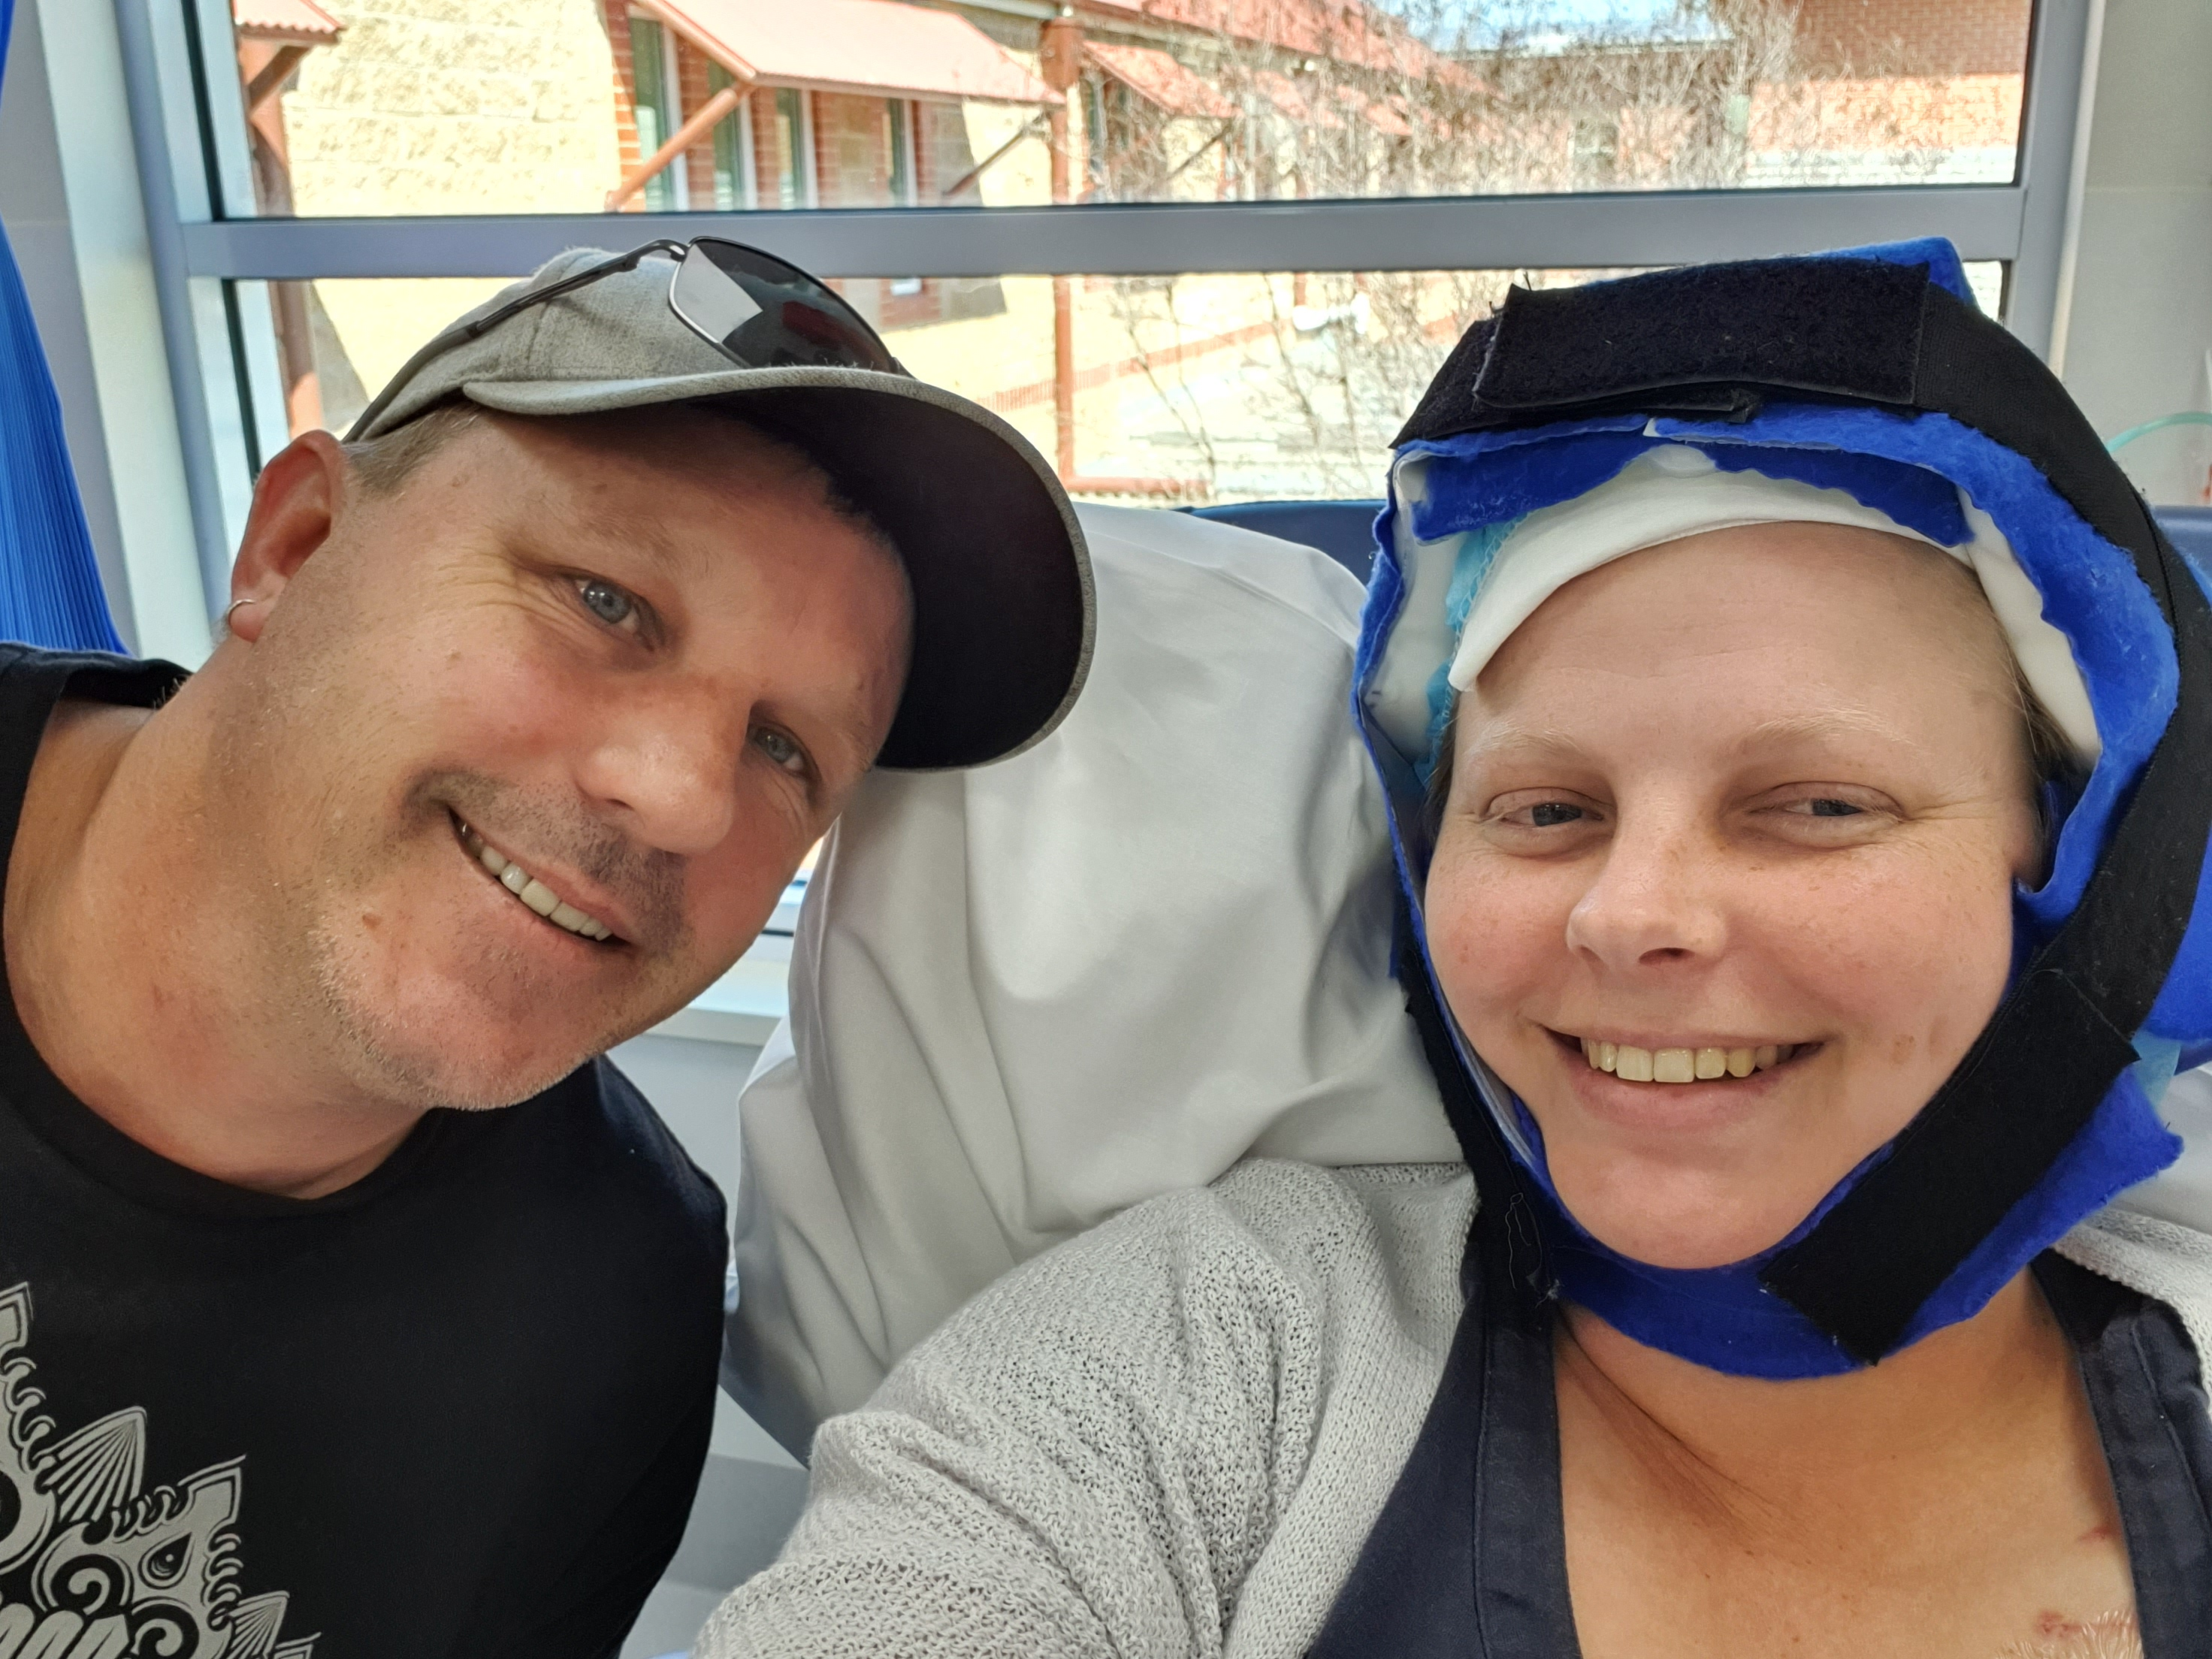 Jessica shares her story and cancer experience